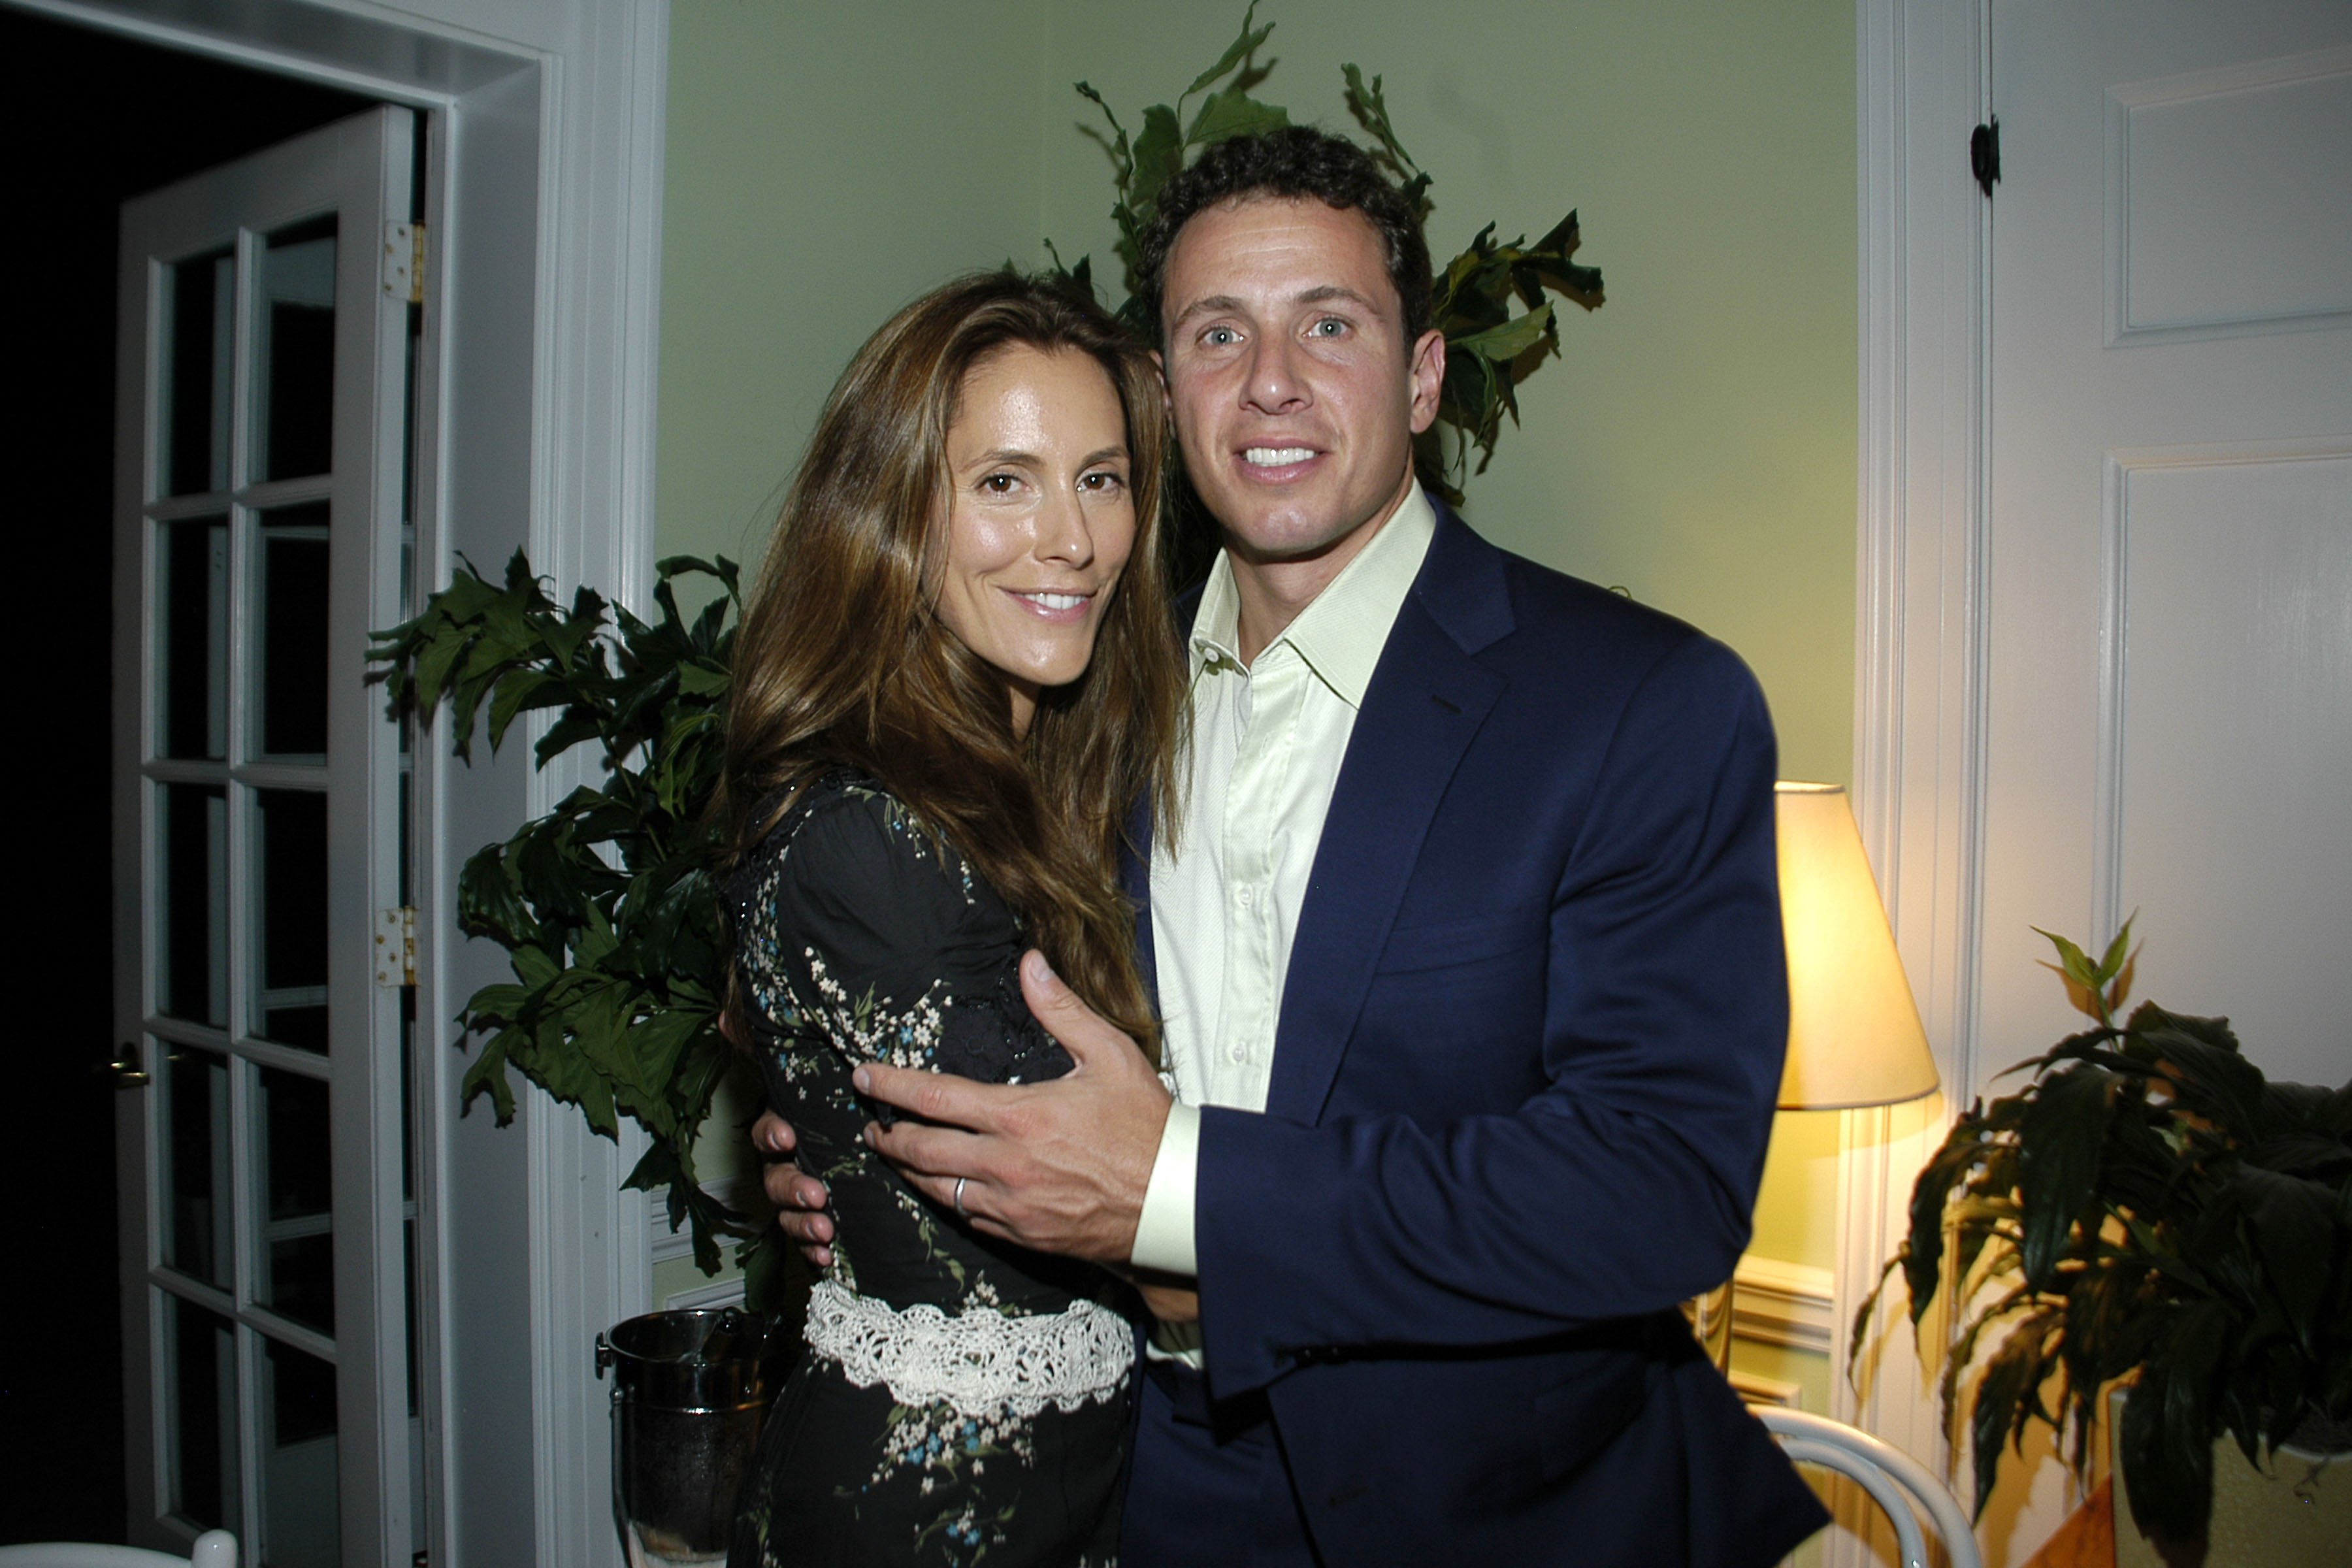 Cristina Greeven Cuomo and Chris Cuomo attend NATURA BISSE Dinner at Private Club on August 17, 2007 | Photo: GettyImages